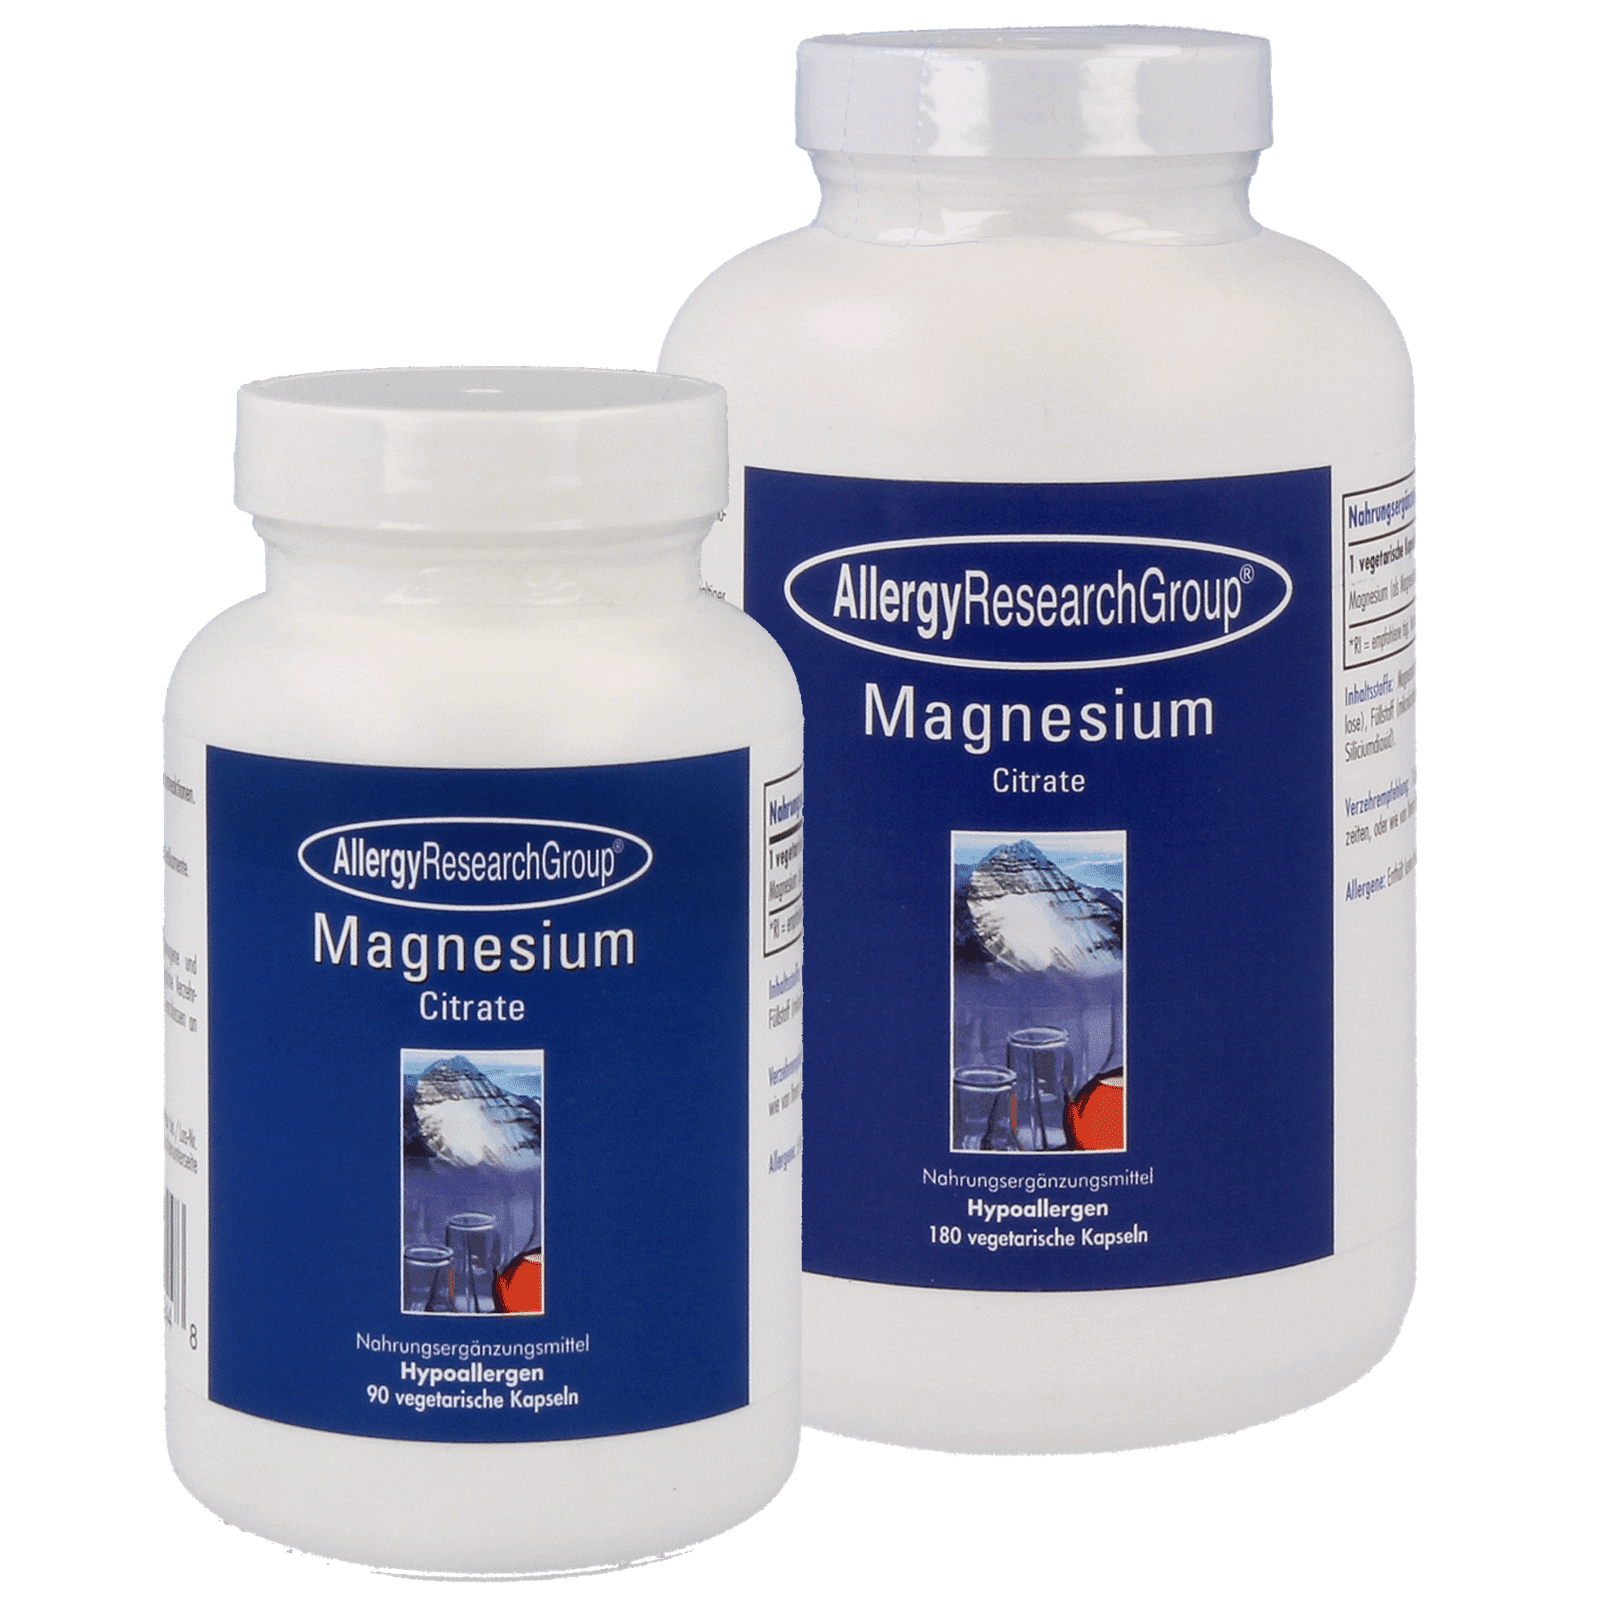 Magnesium Citrate 170 mg